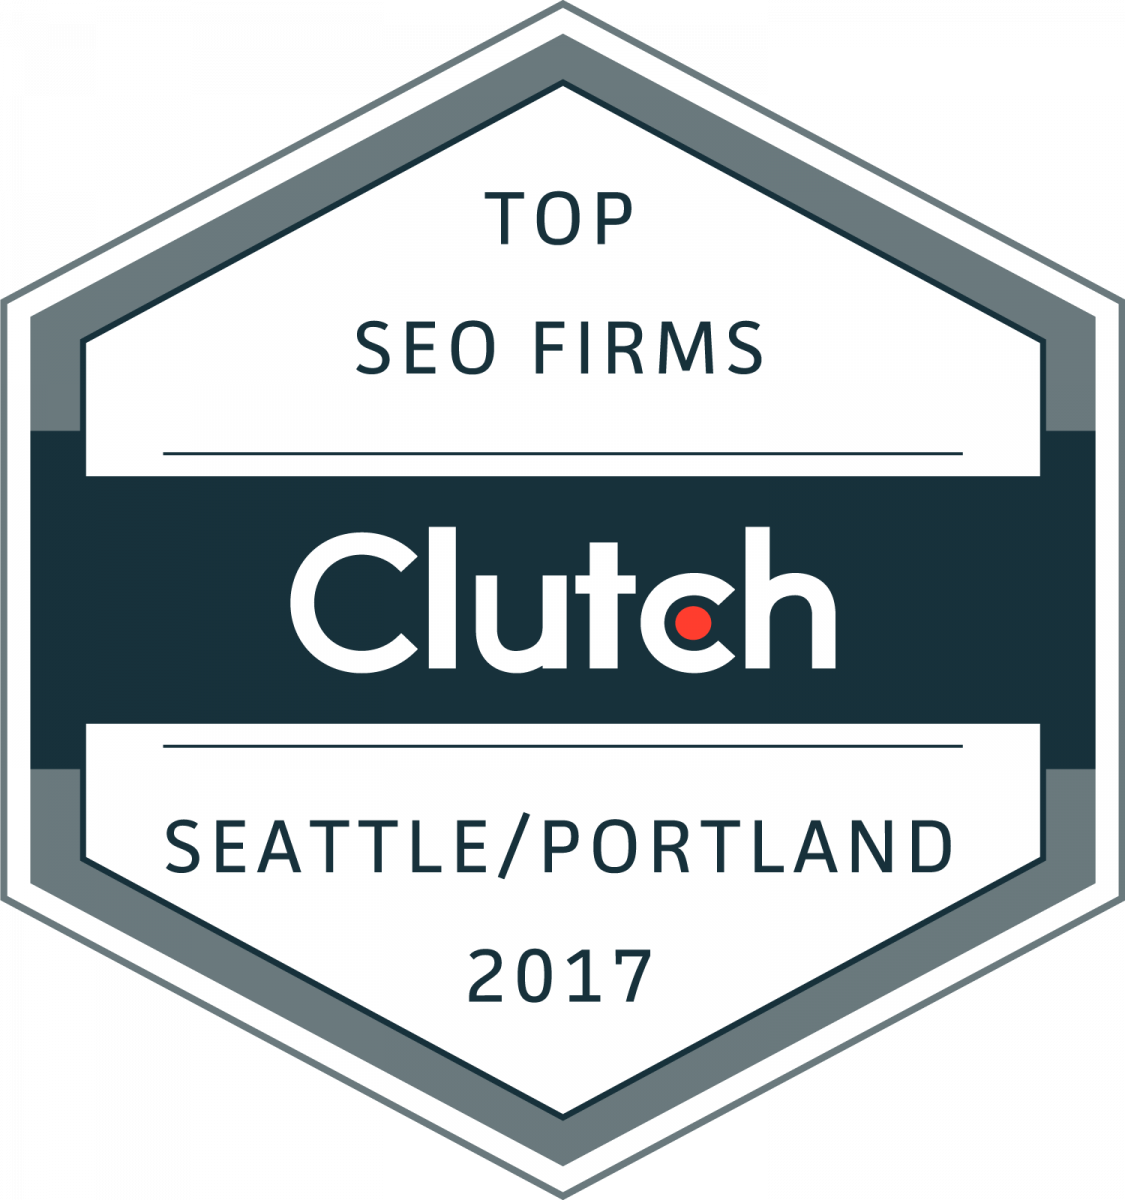 top seo firms seattle portland 2017